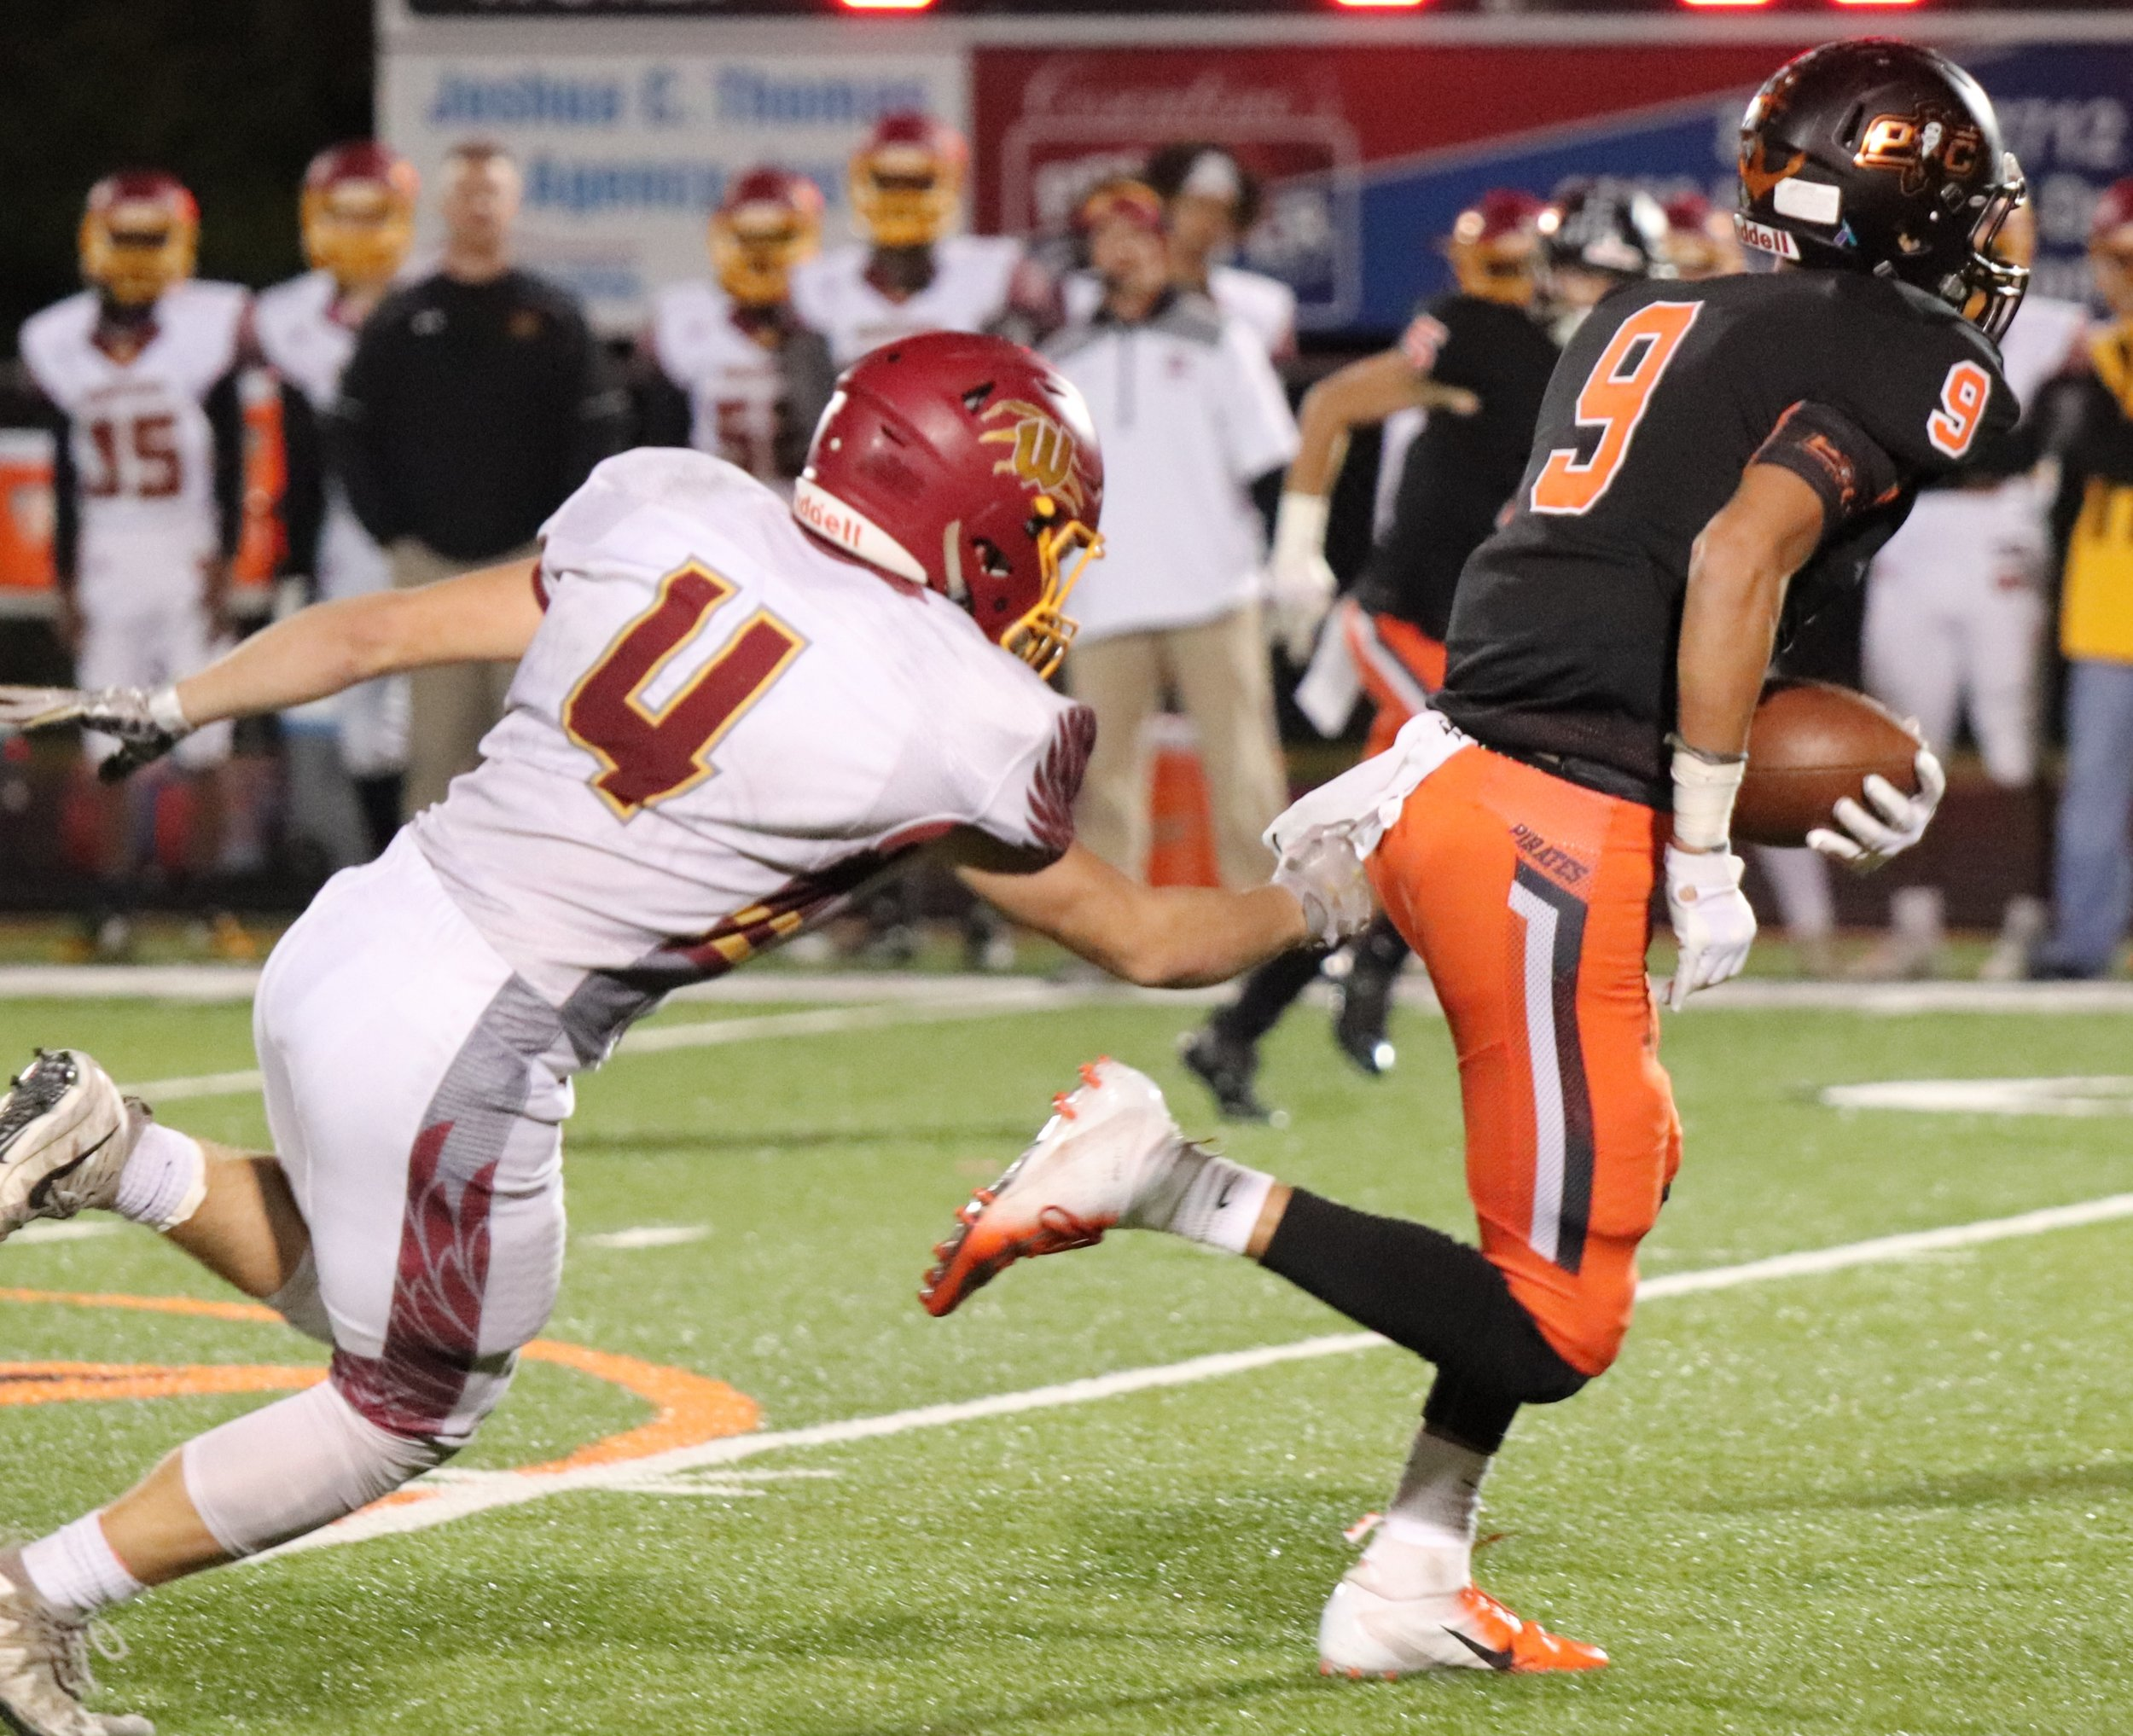 ROSS MARTIN/Special to the Citizen Platte County's Dylan Gilbert, right, became the school's all-time leader in receiving yards on Friday, Oct. 26 vs. Winnetonka.